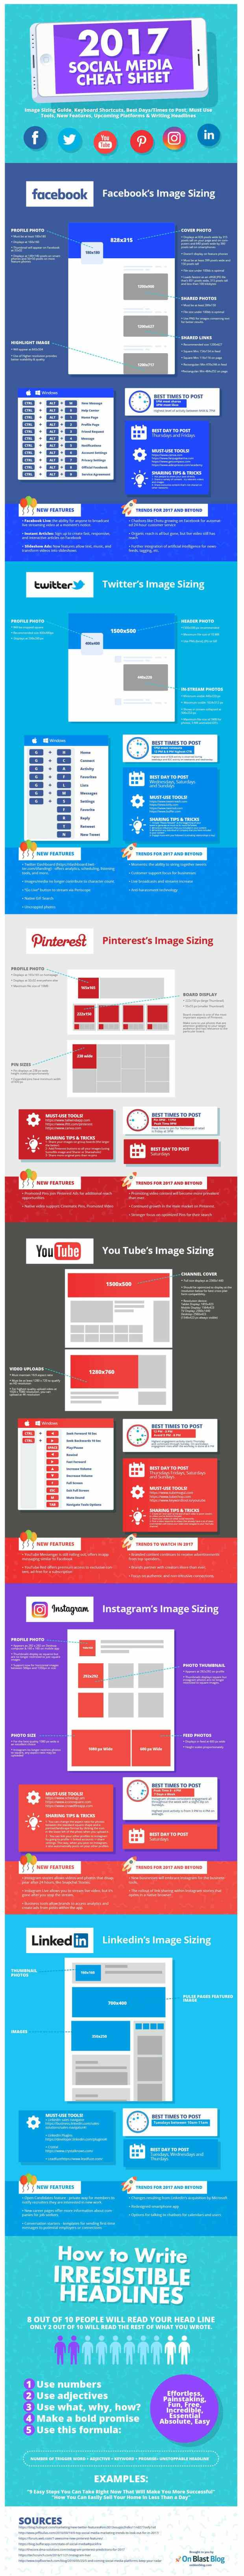 Infographic: The Indispensable Social Media Cheat Sheet Infographic